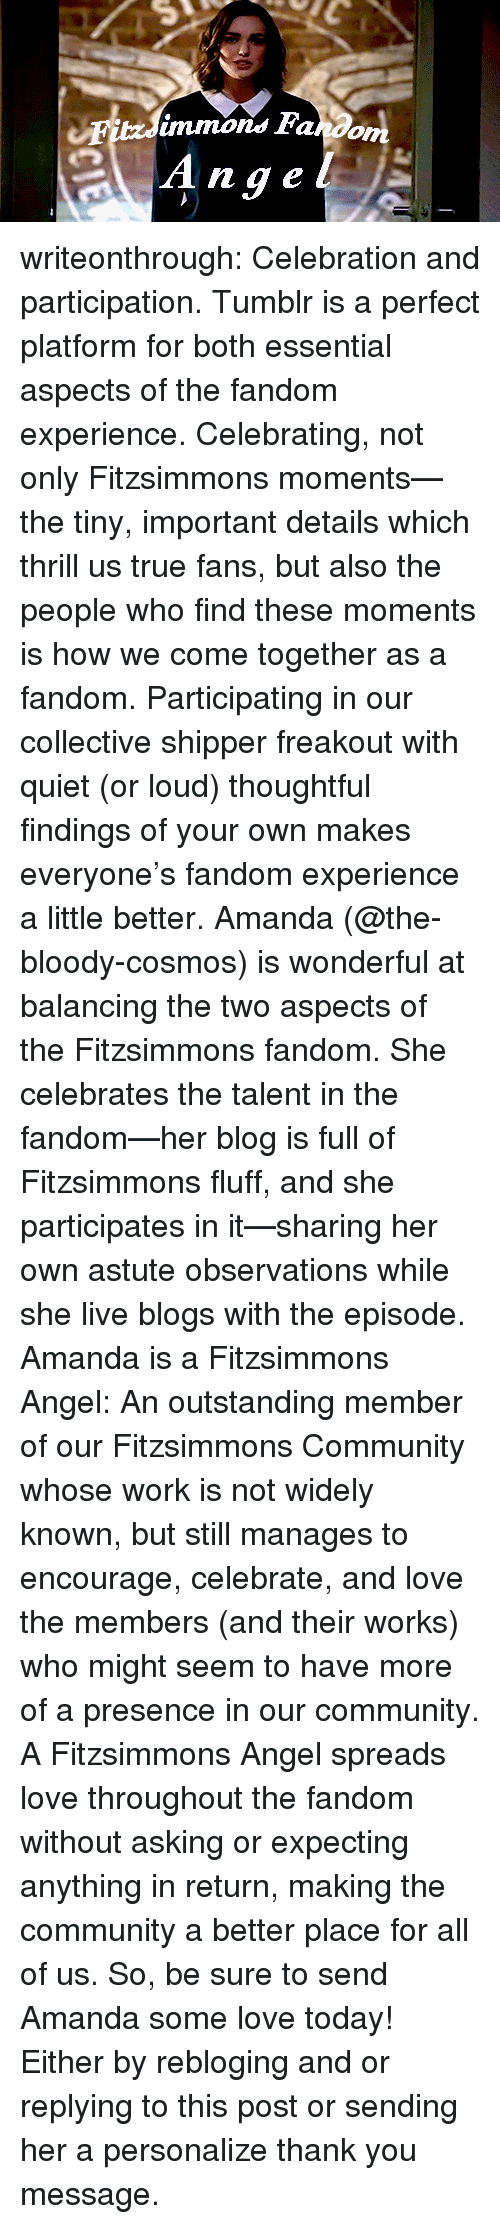 Shipper: immons Fando  nge writeonthrough: Celebration and participation. Tumblr is a perfect platform for both essential aspects of the fandom experience. Celebrating, not only Fitzsimmons moments—the tiny, important details which thrill us true fans, but also the people who find these moments is how we come together as a fandom. Participating in our collective shipper freakout with quiet (or loud) thoughtful findings of your own makes everyone's fandom experience a little better. Amanda (@the-bloody-cosmos) is wonderful at balancing the two aspects of the Fitzsimmons fandom. She celebrates the talent in the fandom—her blog is full of Fitzsimmons fluff, and she participates in it—sharing her own astute observations while she live blogs with the episode. Amanda is a Fitzsimmons Angel: An outstanding member of our Fitzsimmons Community whose work is not widely known, but still manages to encourage, celebrate, and love the members (and their works) who might seem to have more of a presence in our community. A Fitzsimmons Angel spreads love throughout the fandom without asking or expecting anything in return, making the community a better place for all of us. So, be sure to send Amanda some love today! Either by rebloging and or replying to this post or sending her a personalize thank you message.